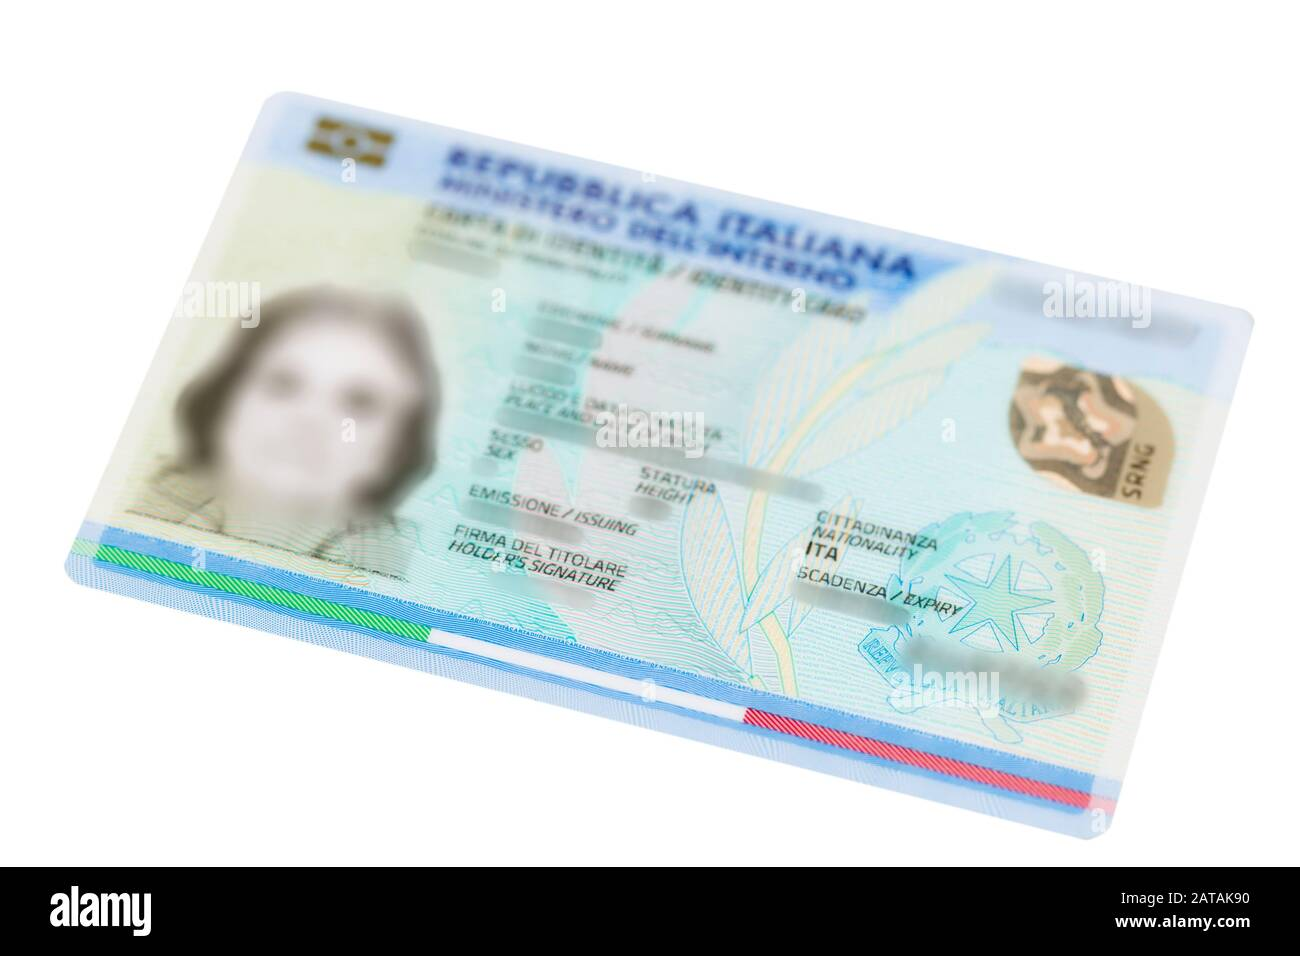 Id Card High Resolution Stock Photography And Images Alamy